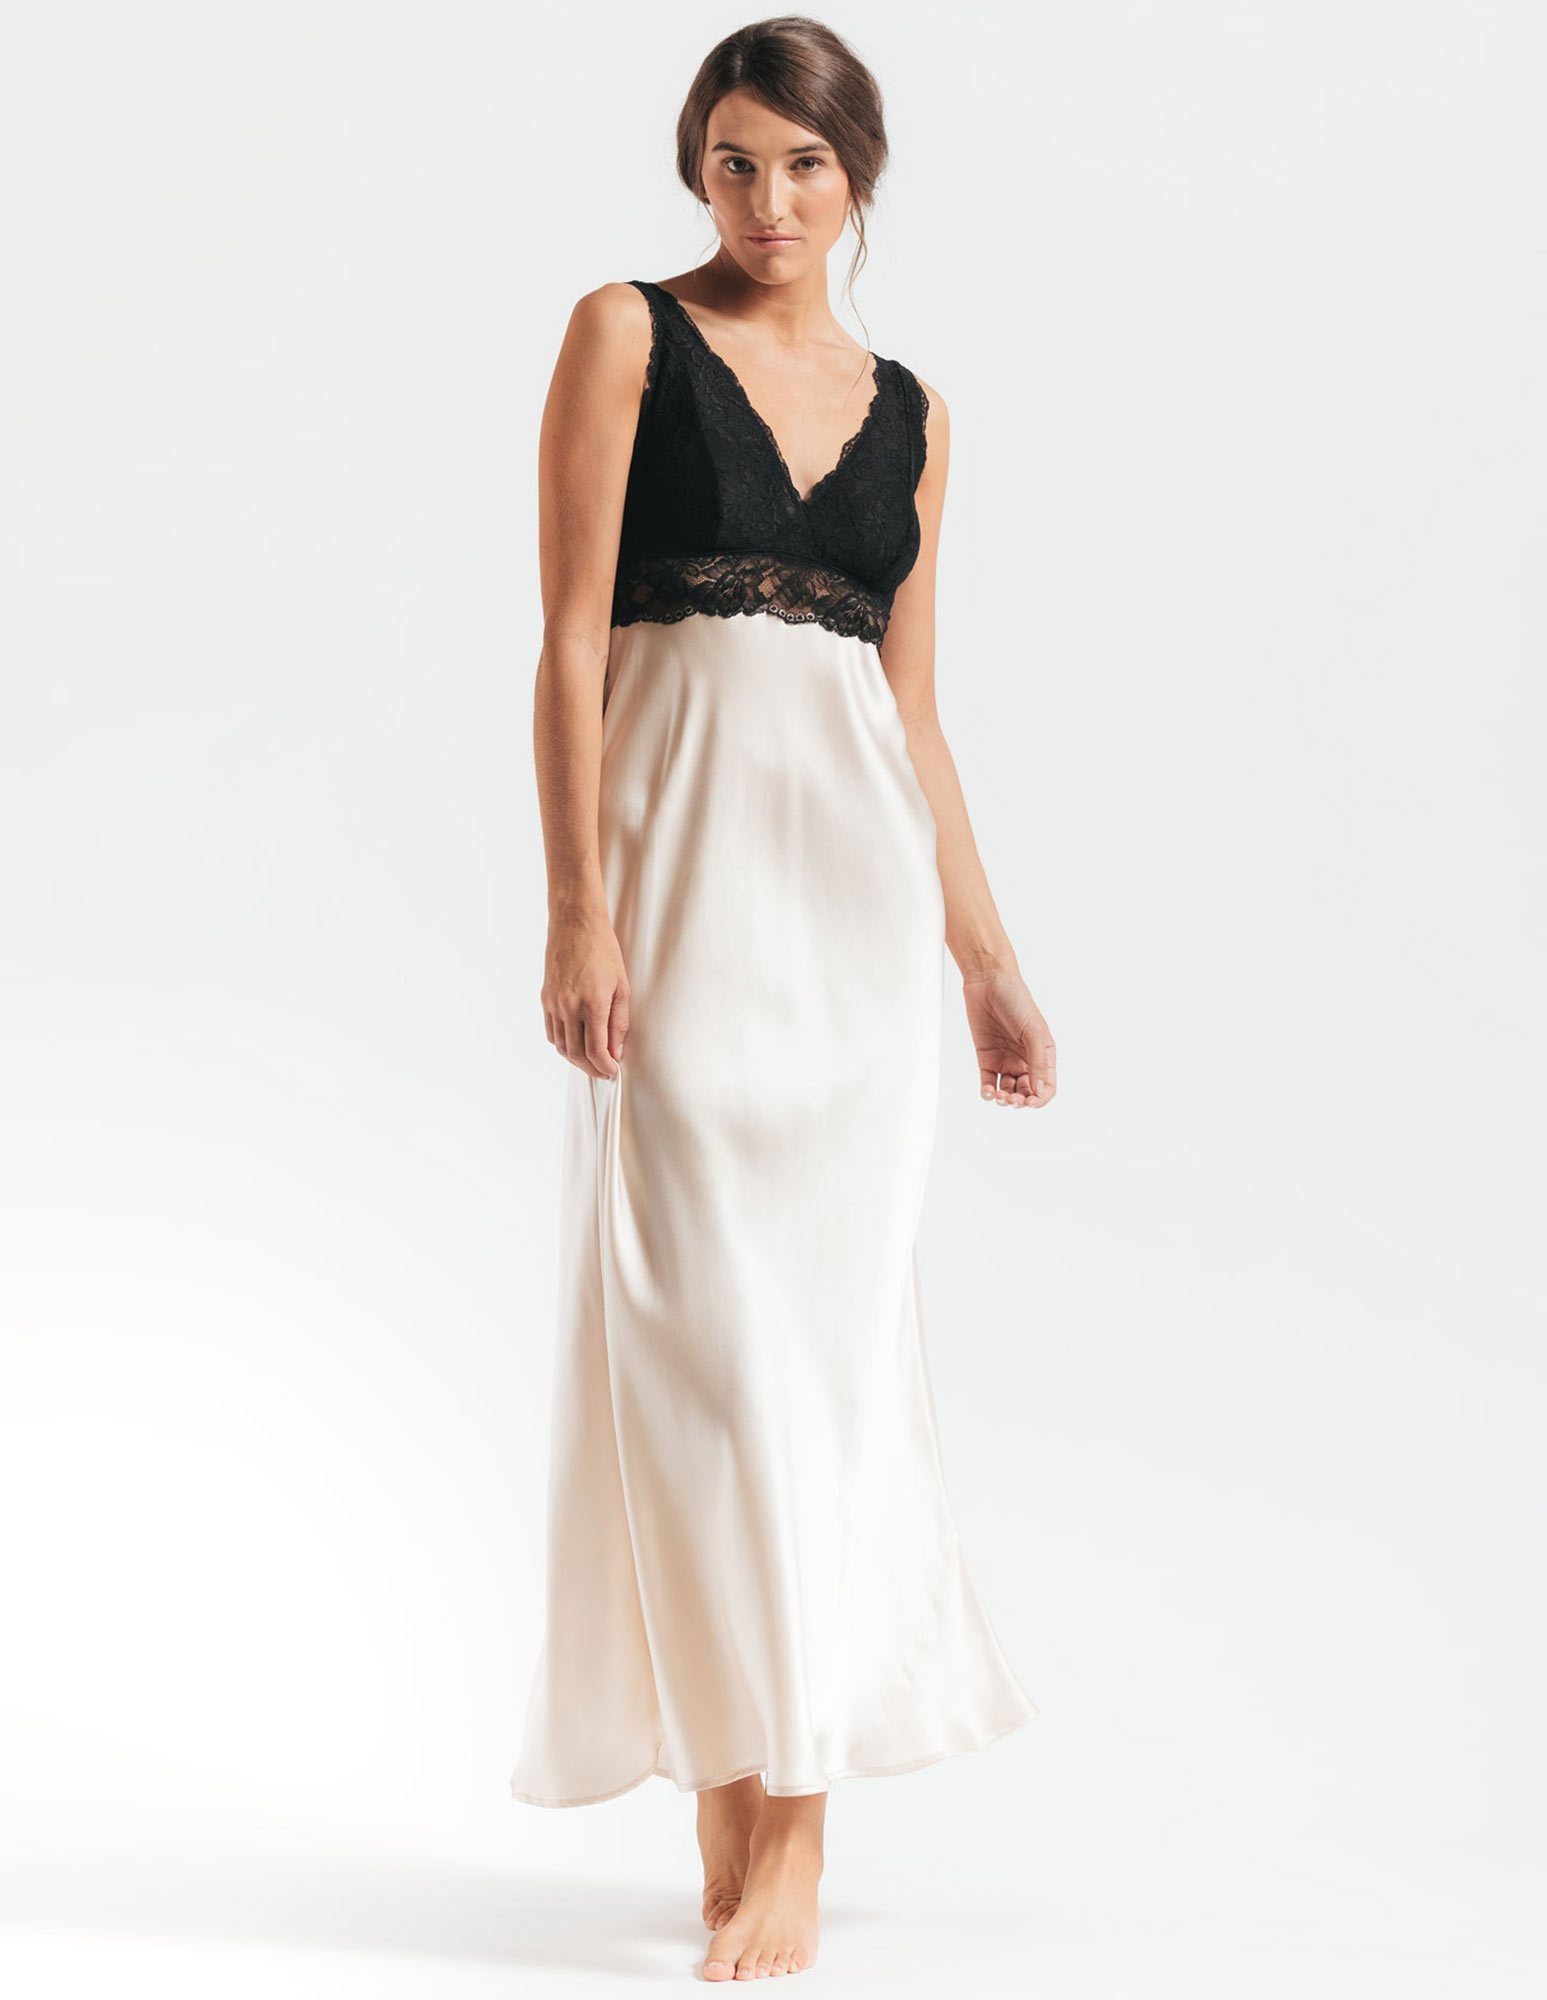 24. Morgan Bust-Support Gown $254. S-XL. Champagne (shown), all black, or all ivory.